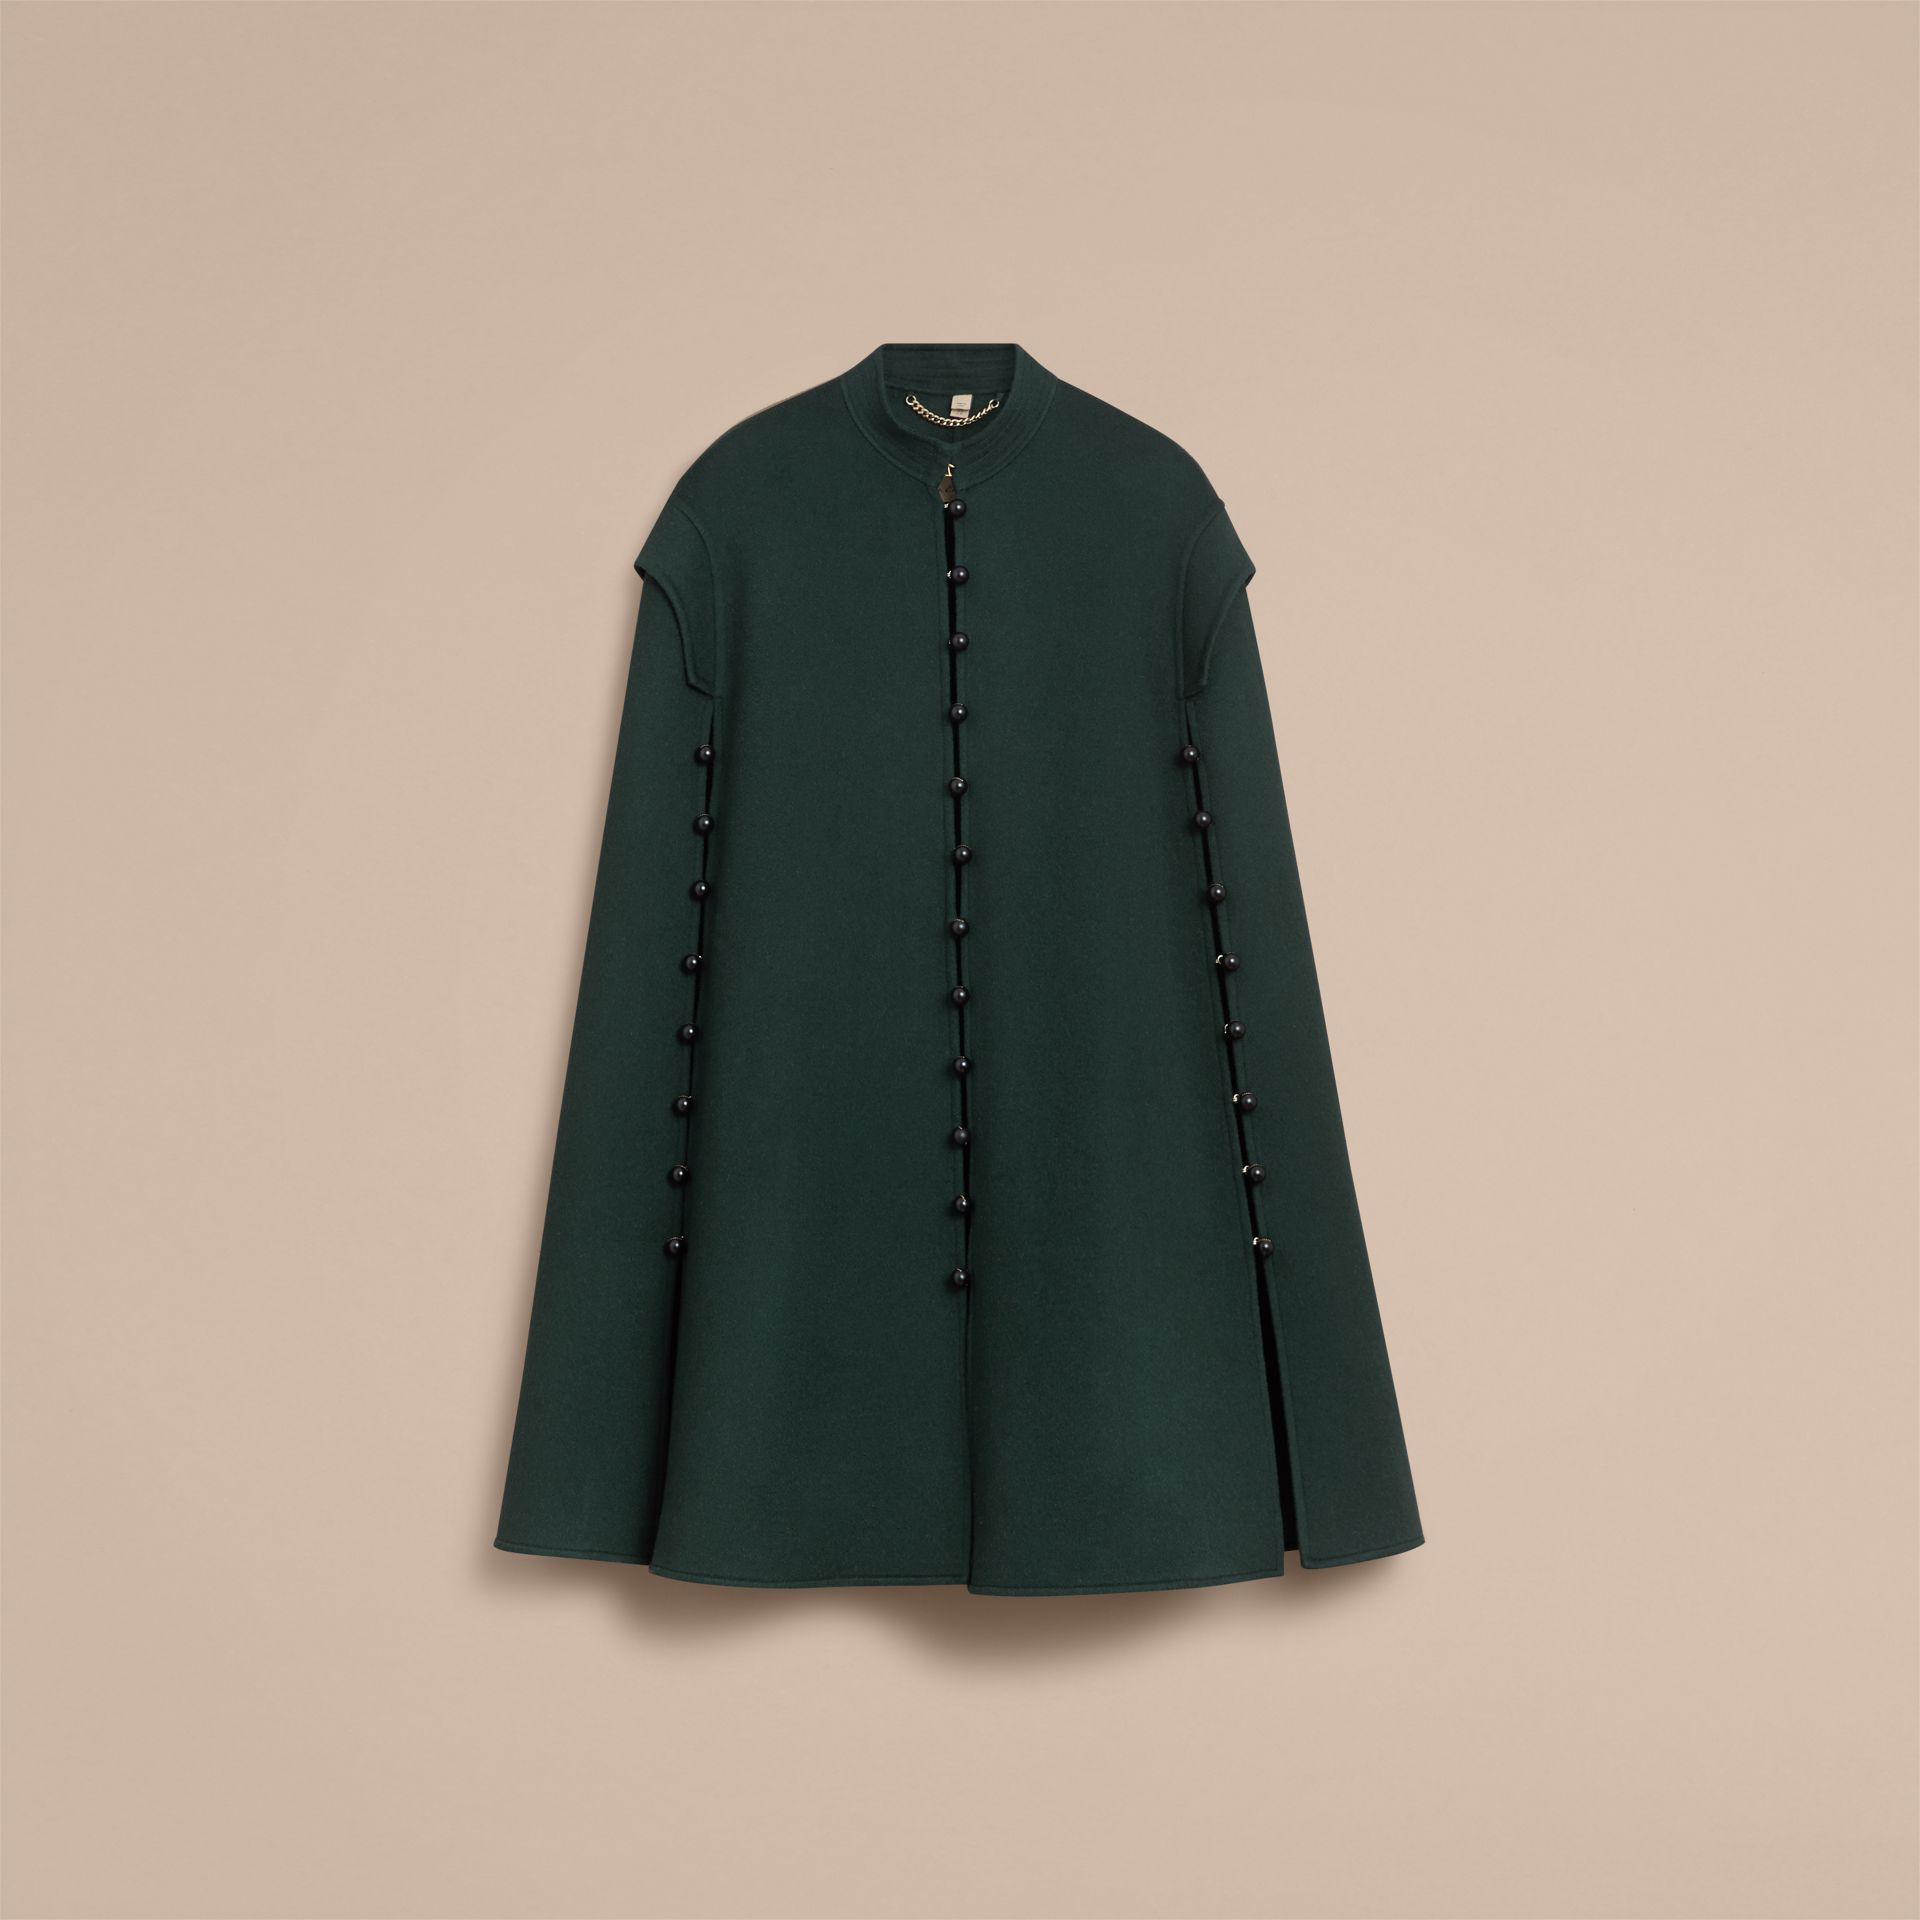 Domed Button Camel Hair Wool Cape in Dark Pewter Blue - Women | Burberry - gallery image 4